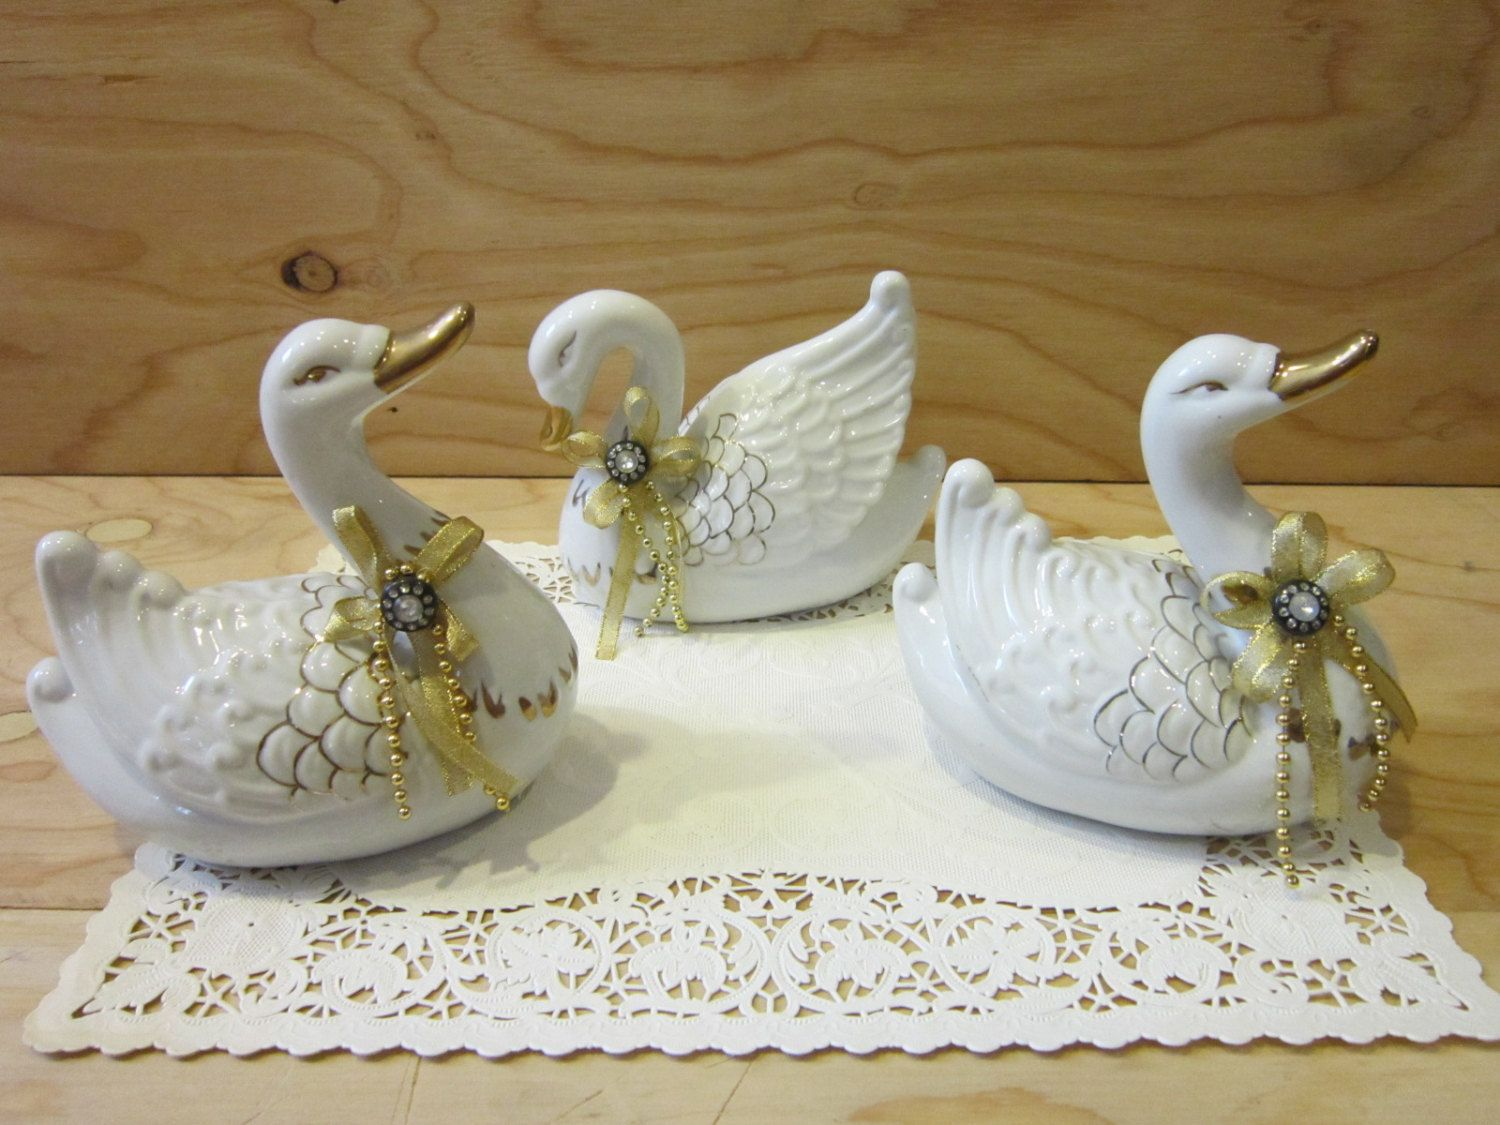 Set of Three Lovely Swan Figurines * Gold Trimmed Swan Figurines by RainbowConnection15 on Etsy